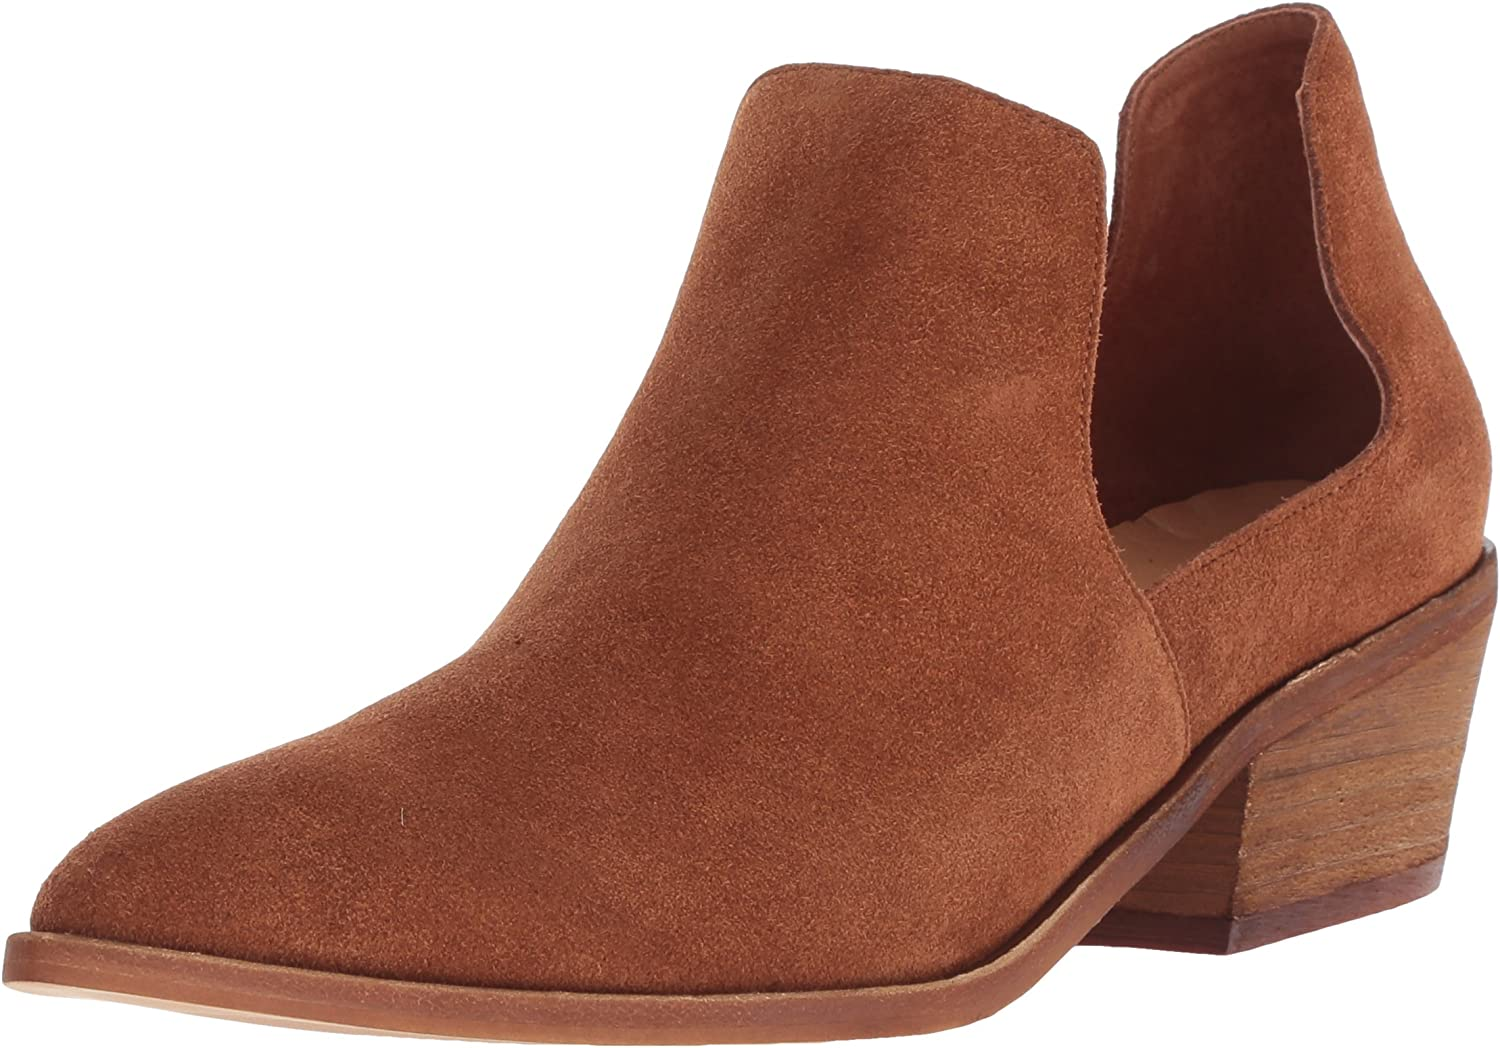 Chinese Laundry Women's Focus Ankle Boot